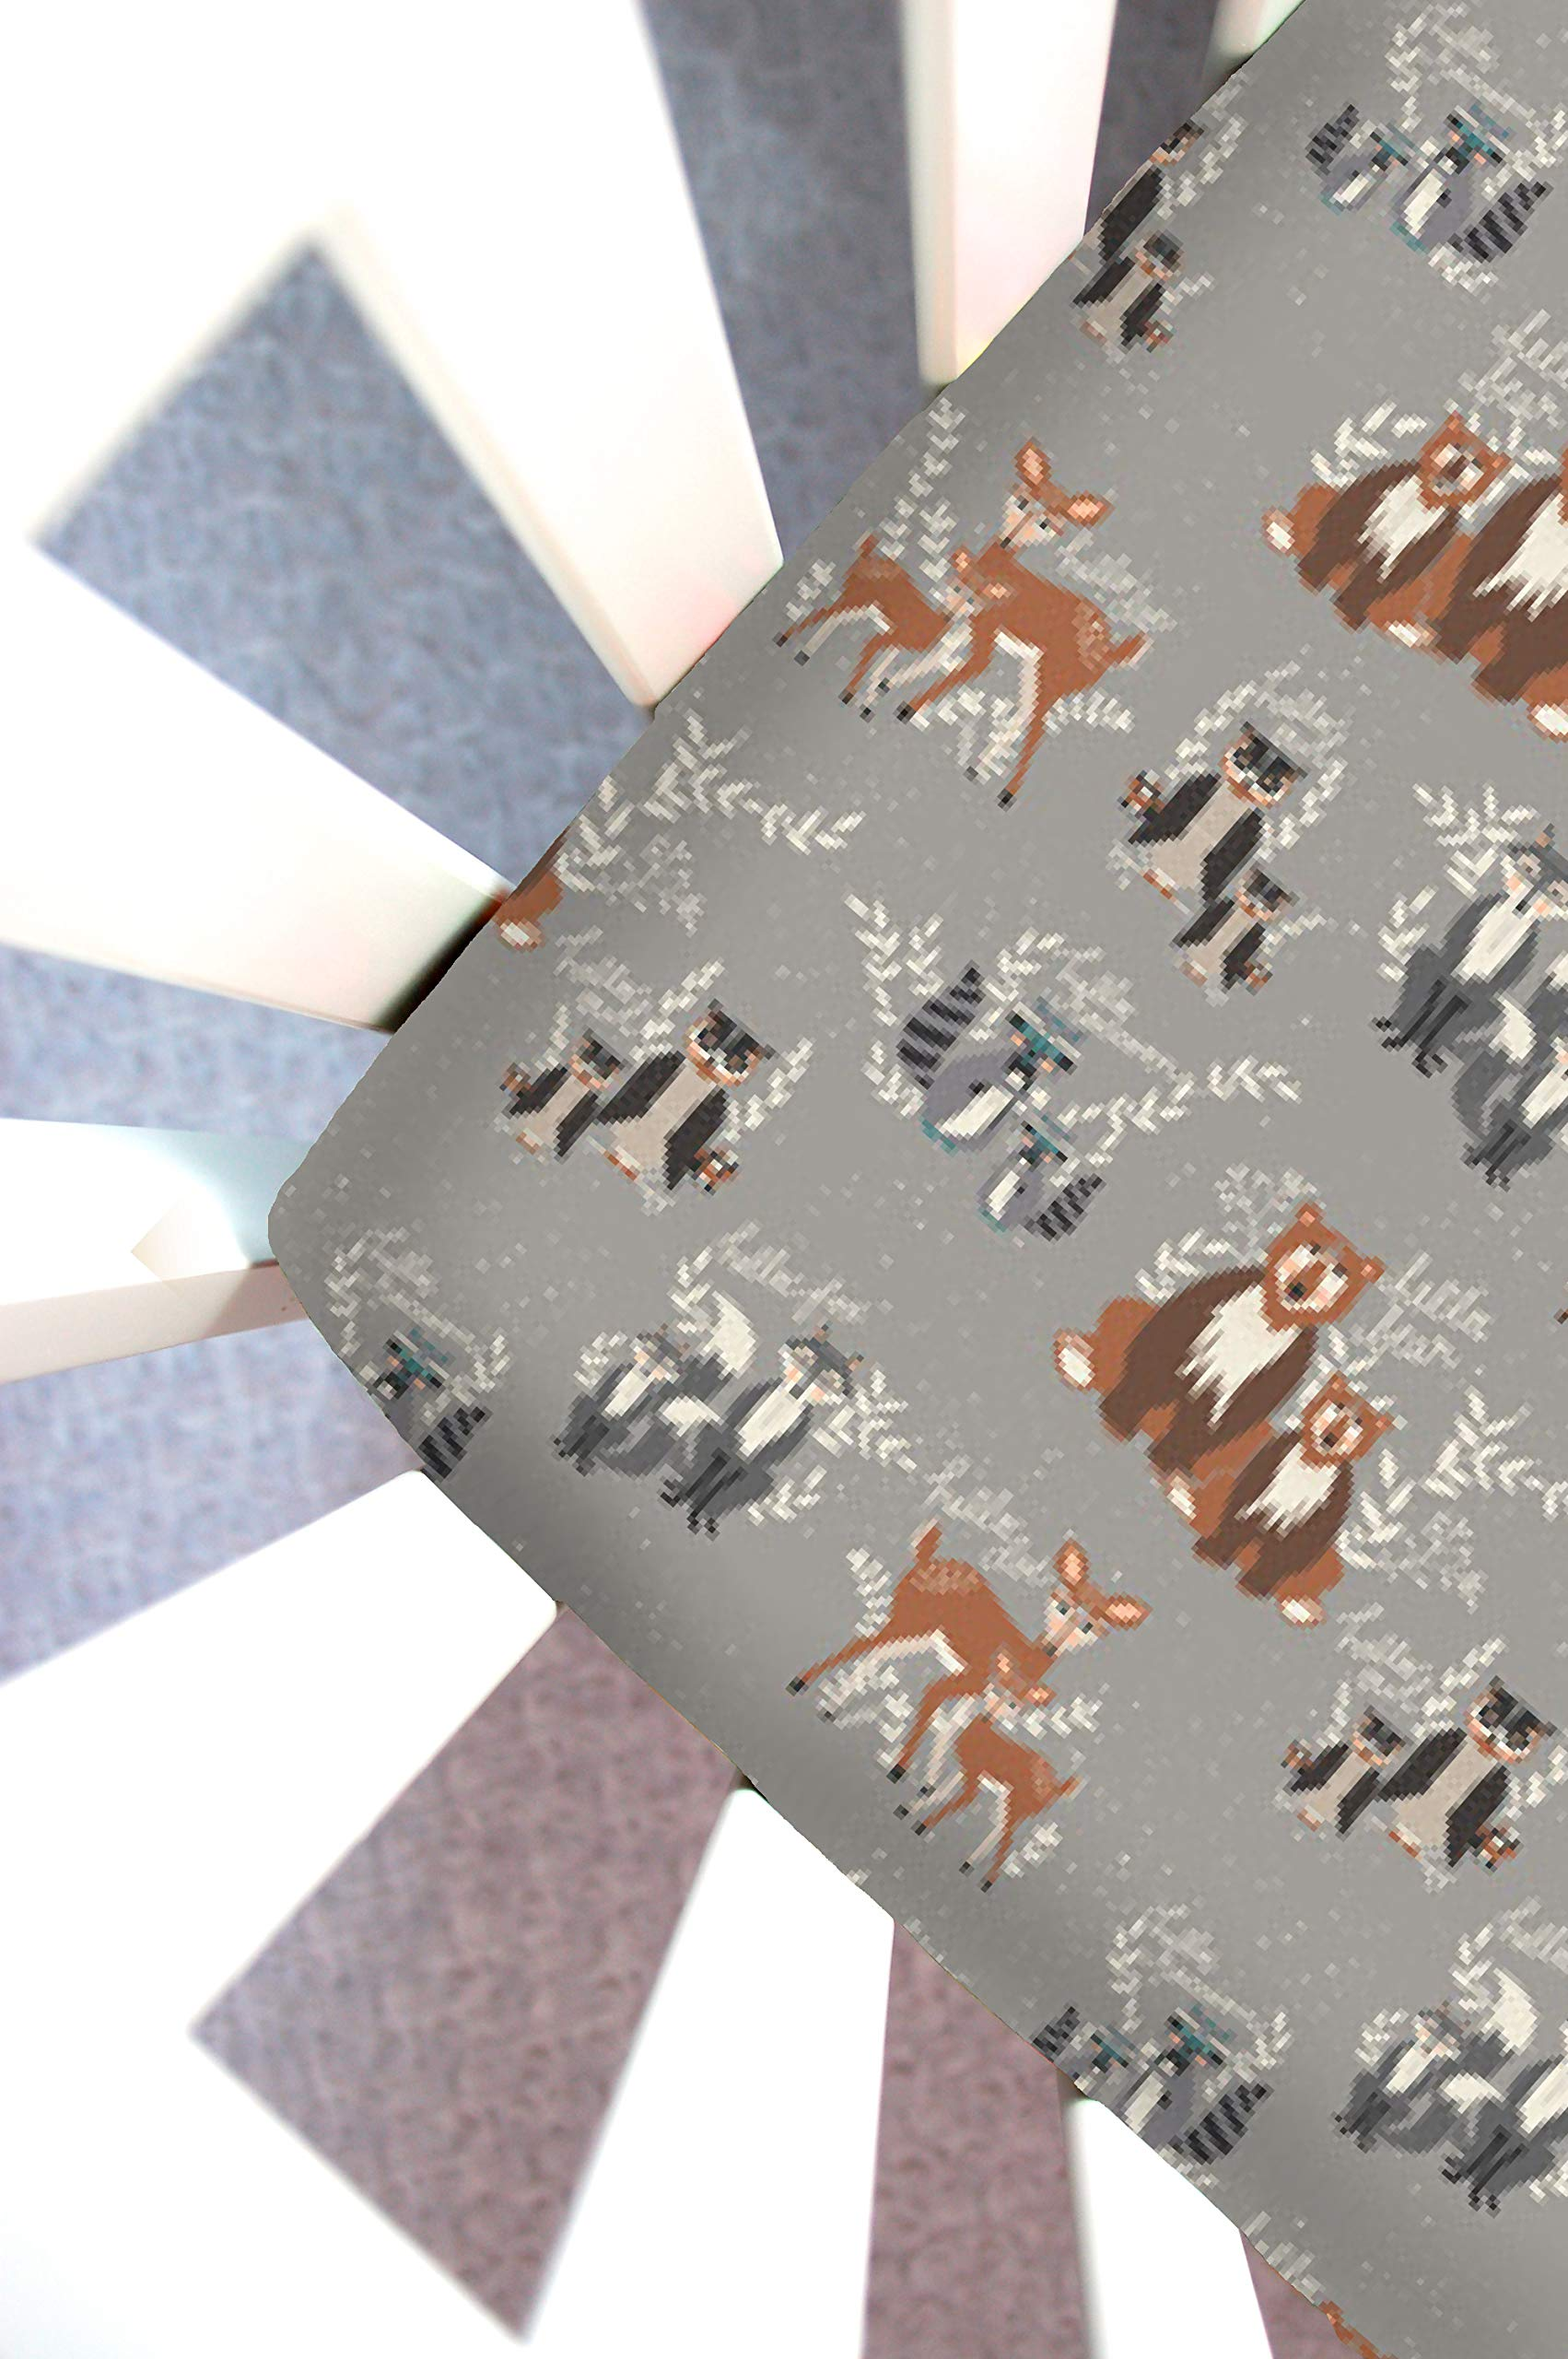 Little Moose by Liza Handmade Sheet Made to Fit Baby Bjorn Cradle in Hello Fog (Gray Woodland Animals). This Sheet was Not Created or Sold by Baby Bjorn. by Little Moose By Liza LLC